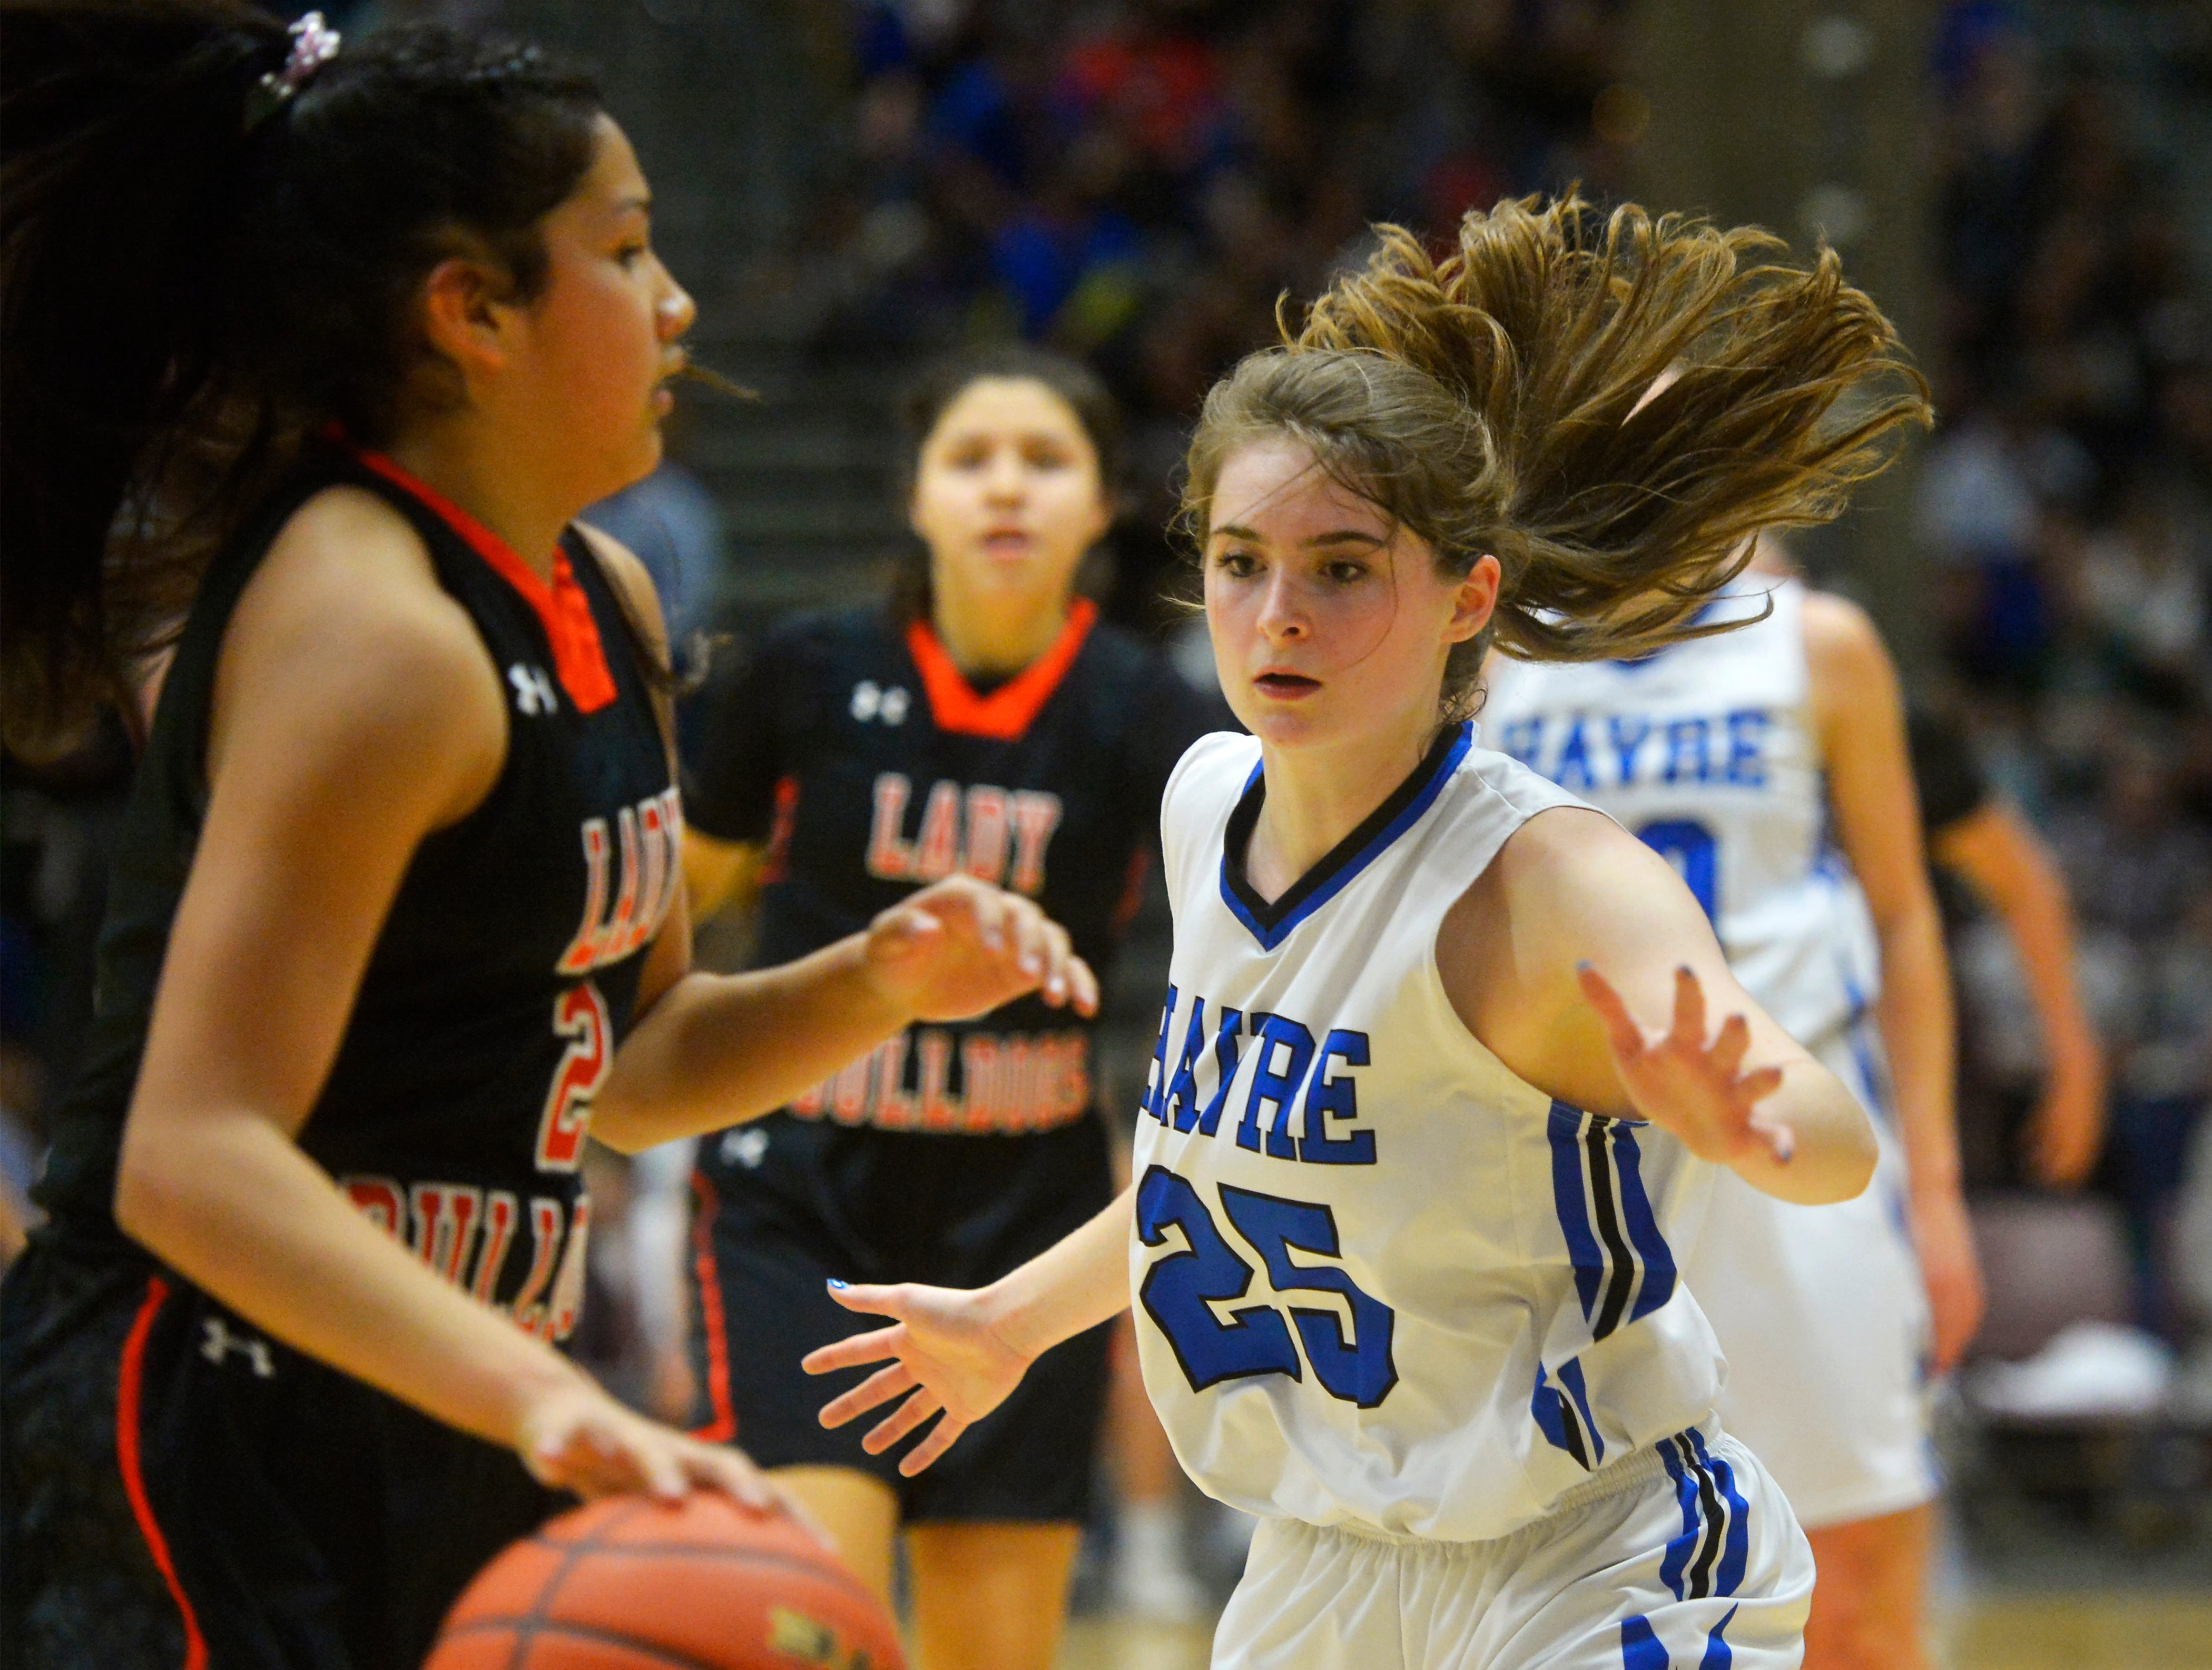 Havre's Katie Wirtzberger defends Hardin's Kamber Good Luck during the girls title game of the State Class A Basketball Tournament in the Four Seasons Arena, Saturday.